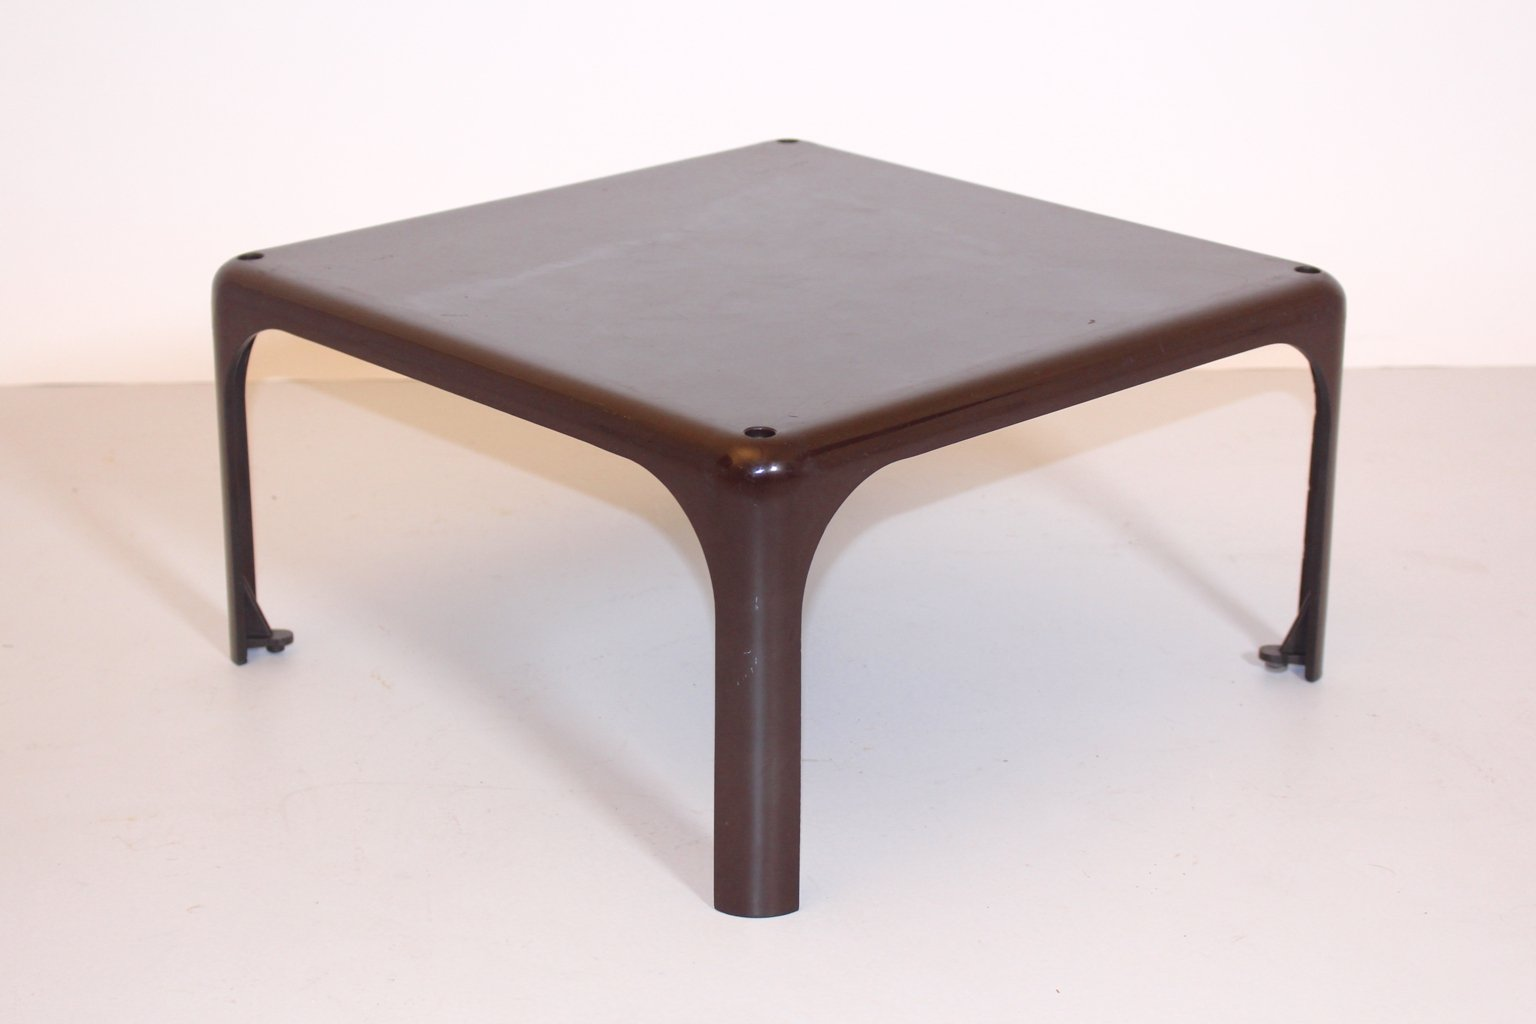 Brown Demetrio 45 Coffee Table By Vico Magistretti For Atemide 1960s For Sale At Pamono